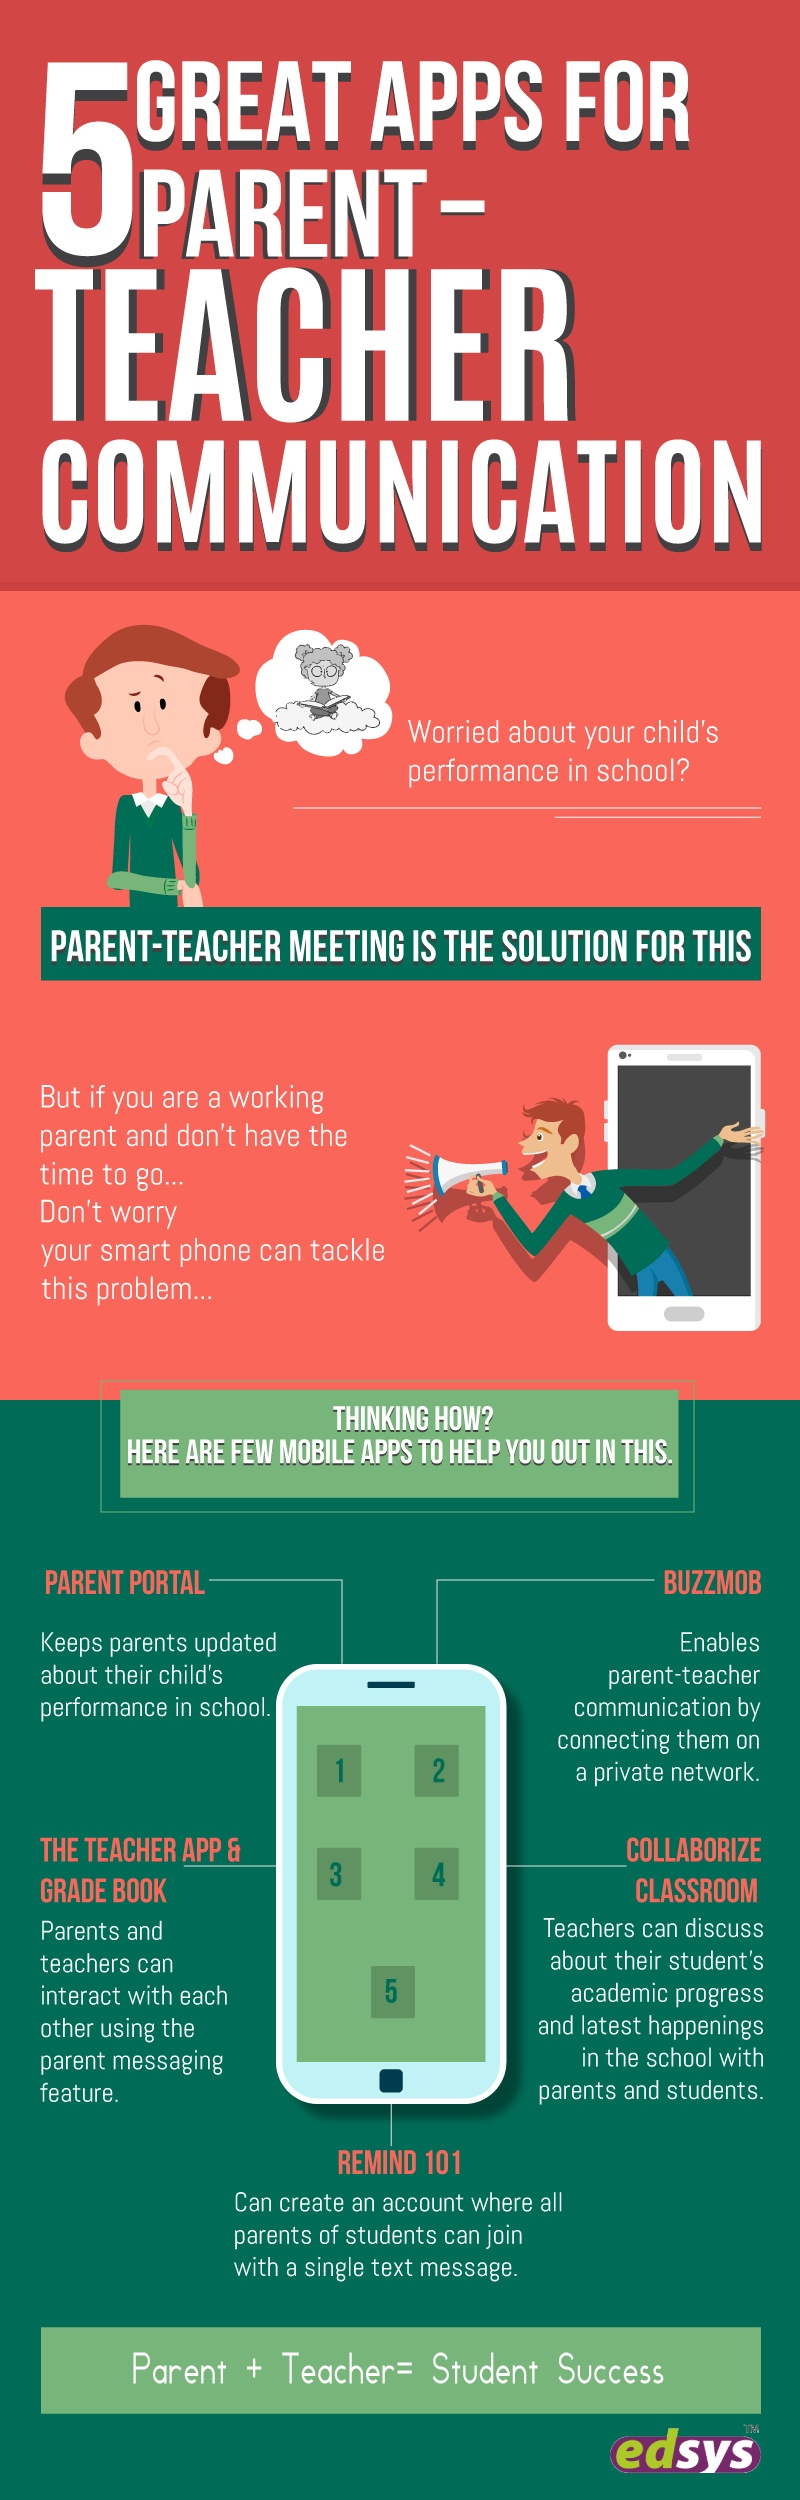 5 Great Apps for Parent-Teacher Communication Infographic